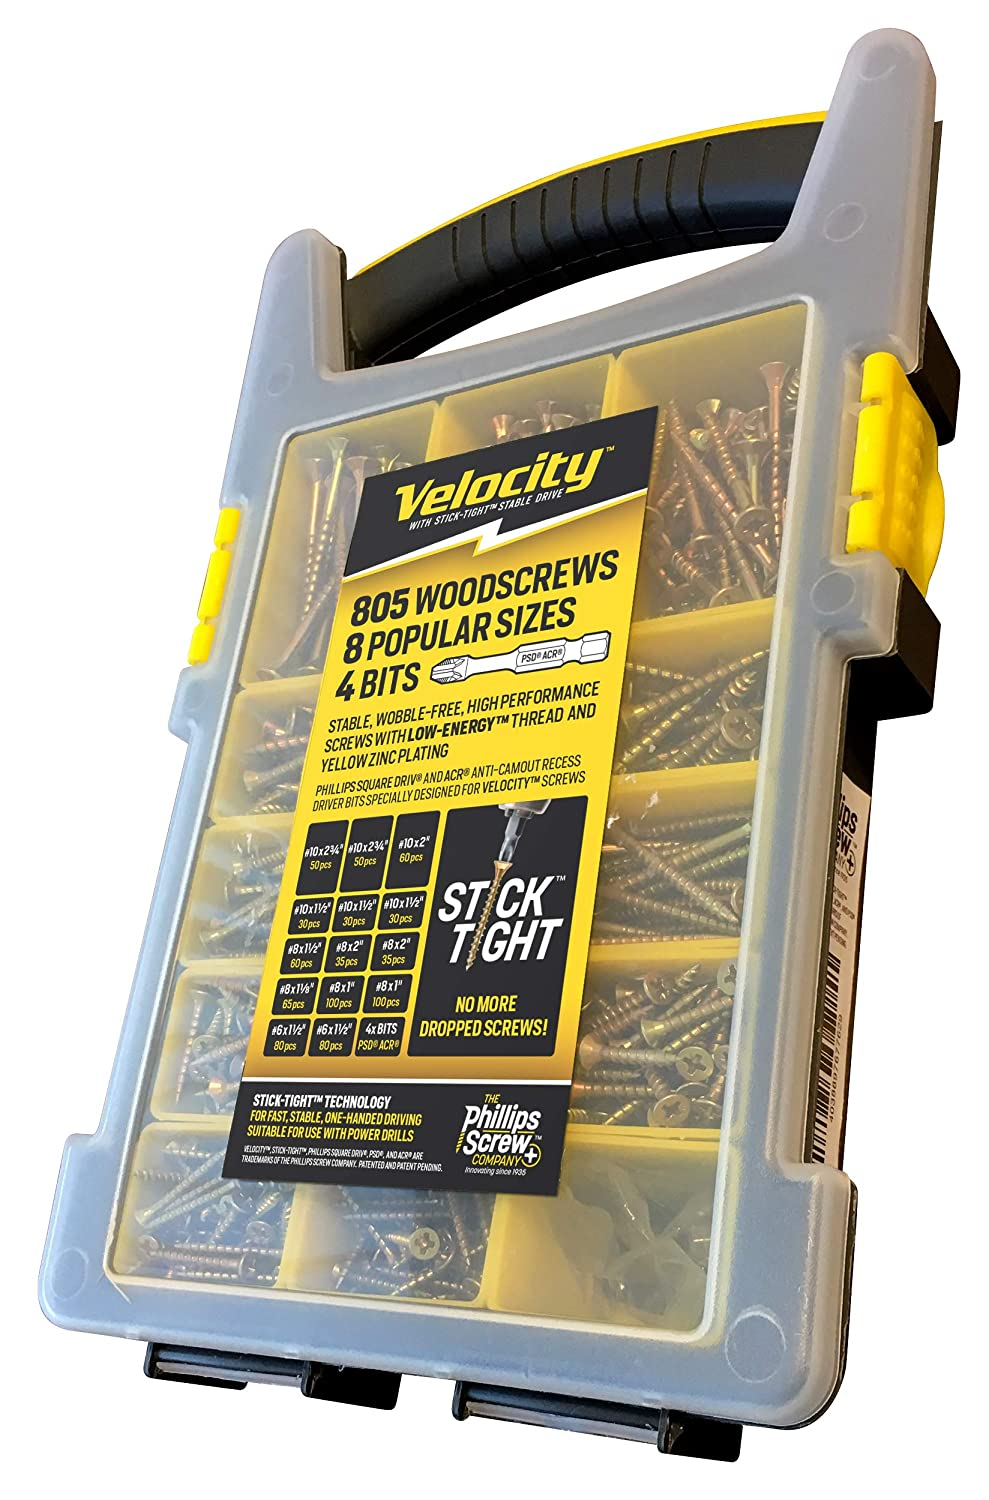 Site-Case Interior Wood Screw Kit Contains 805 Screws in 8 Popular Sizes by Velocity